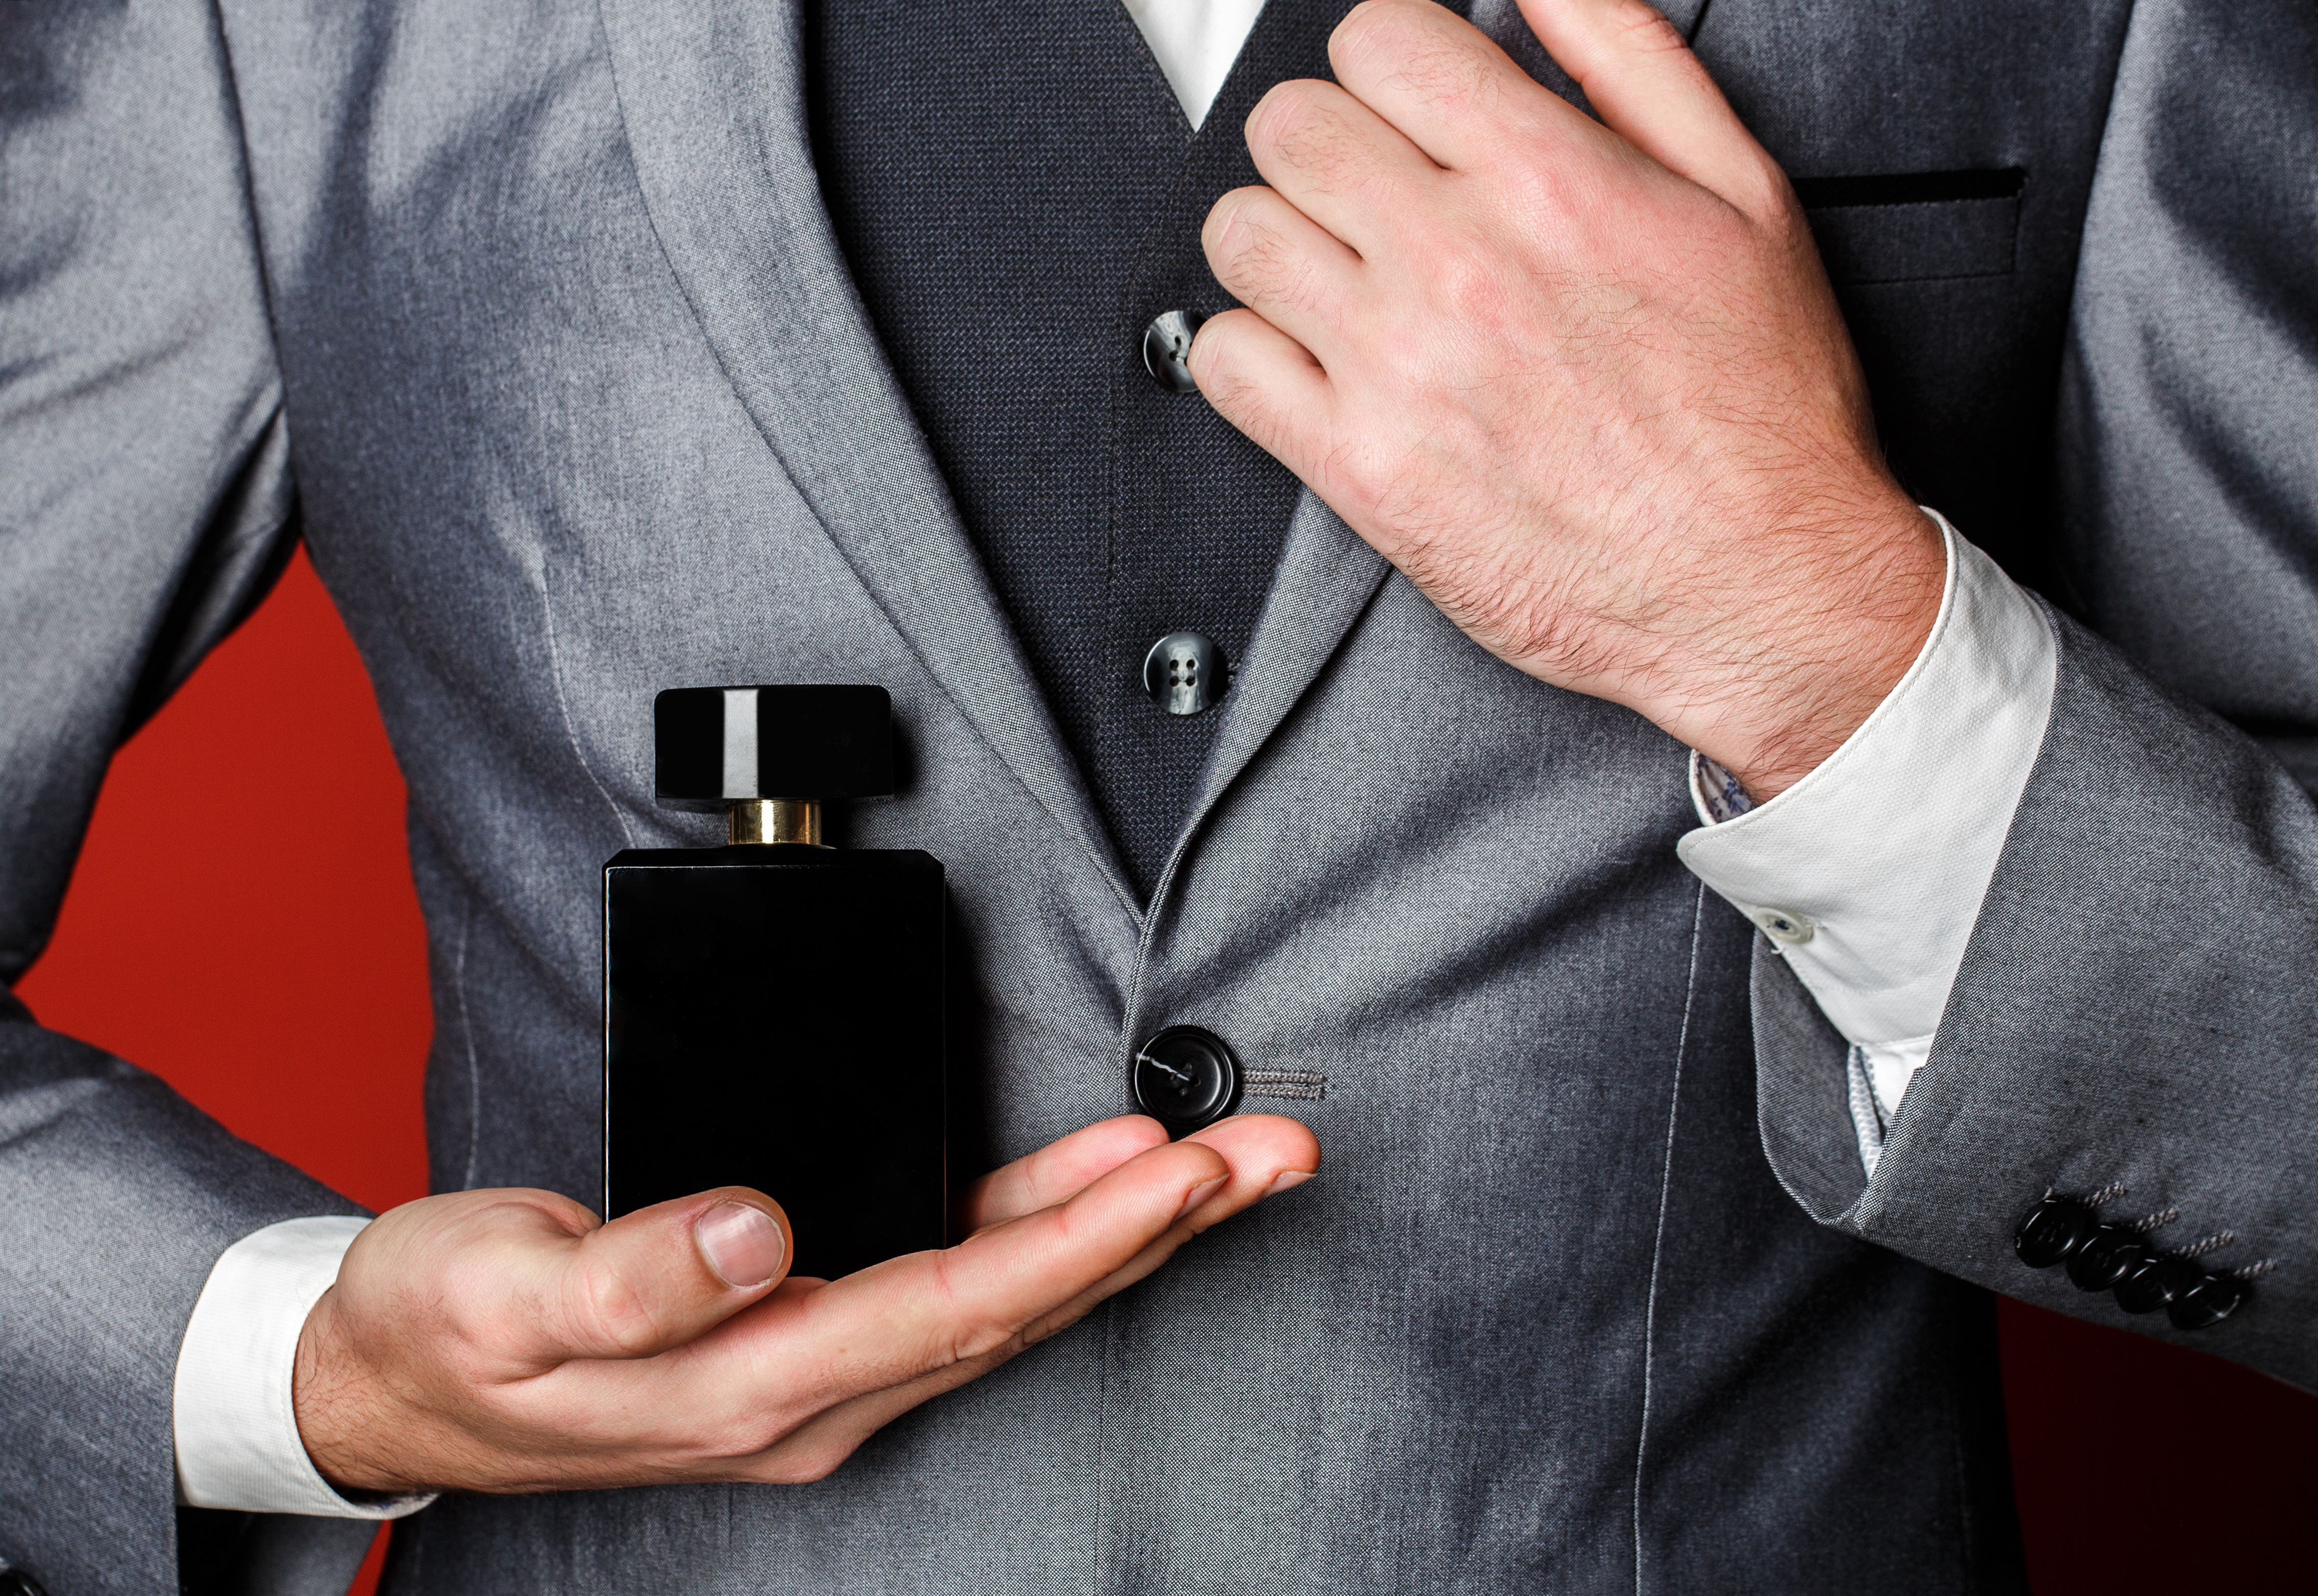 Find Some Of The Best Colognes For Men At Macy S Men S Journal